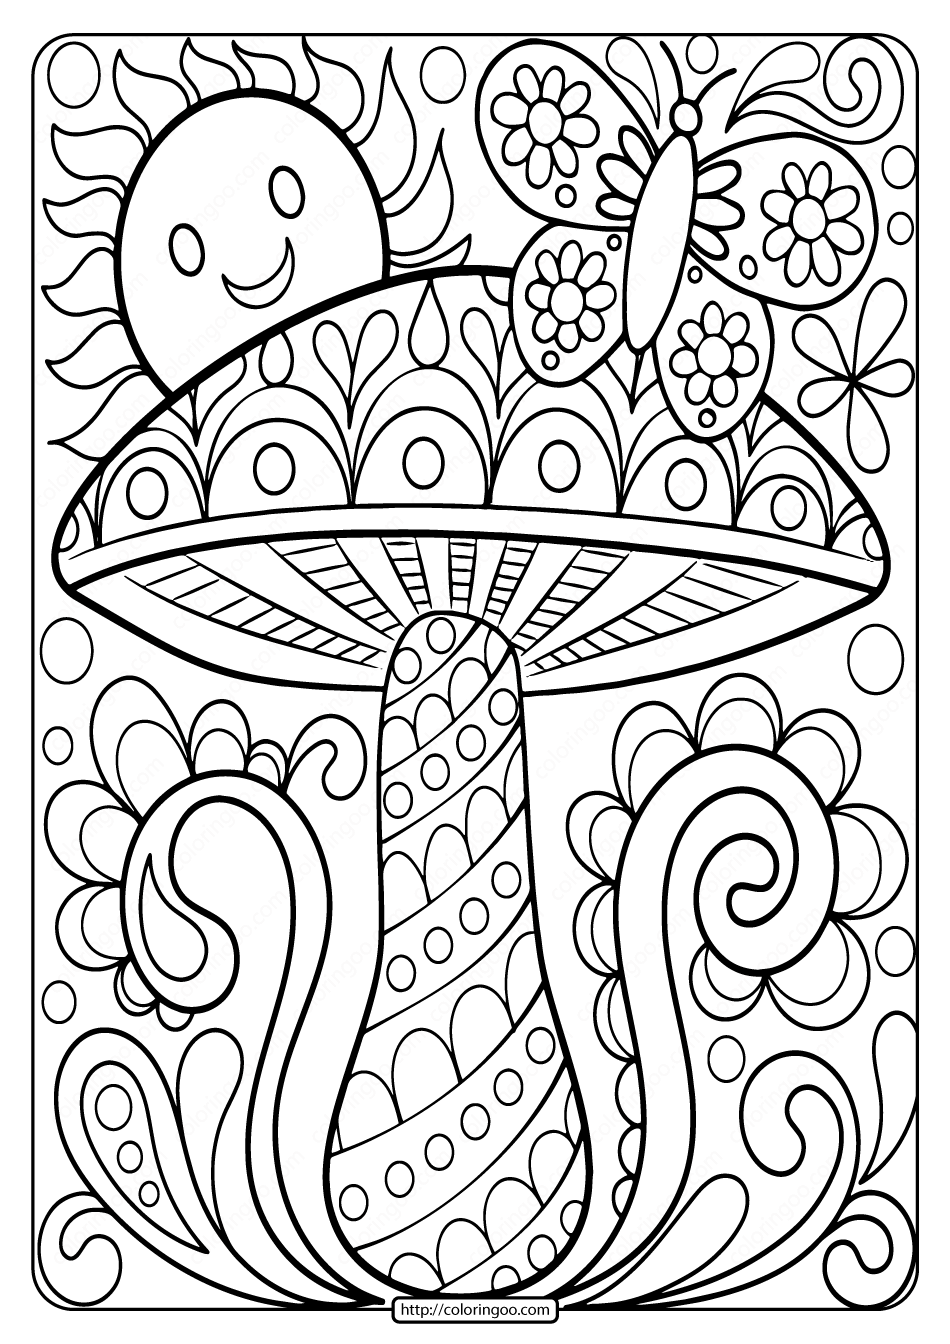 coloring papers free printable mushroom adult coloring page papers coloring